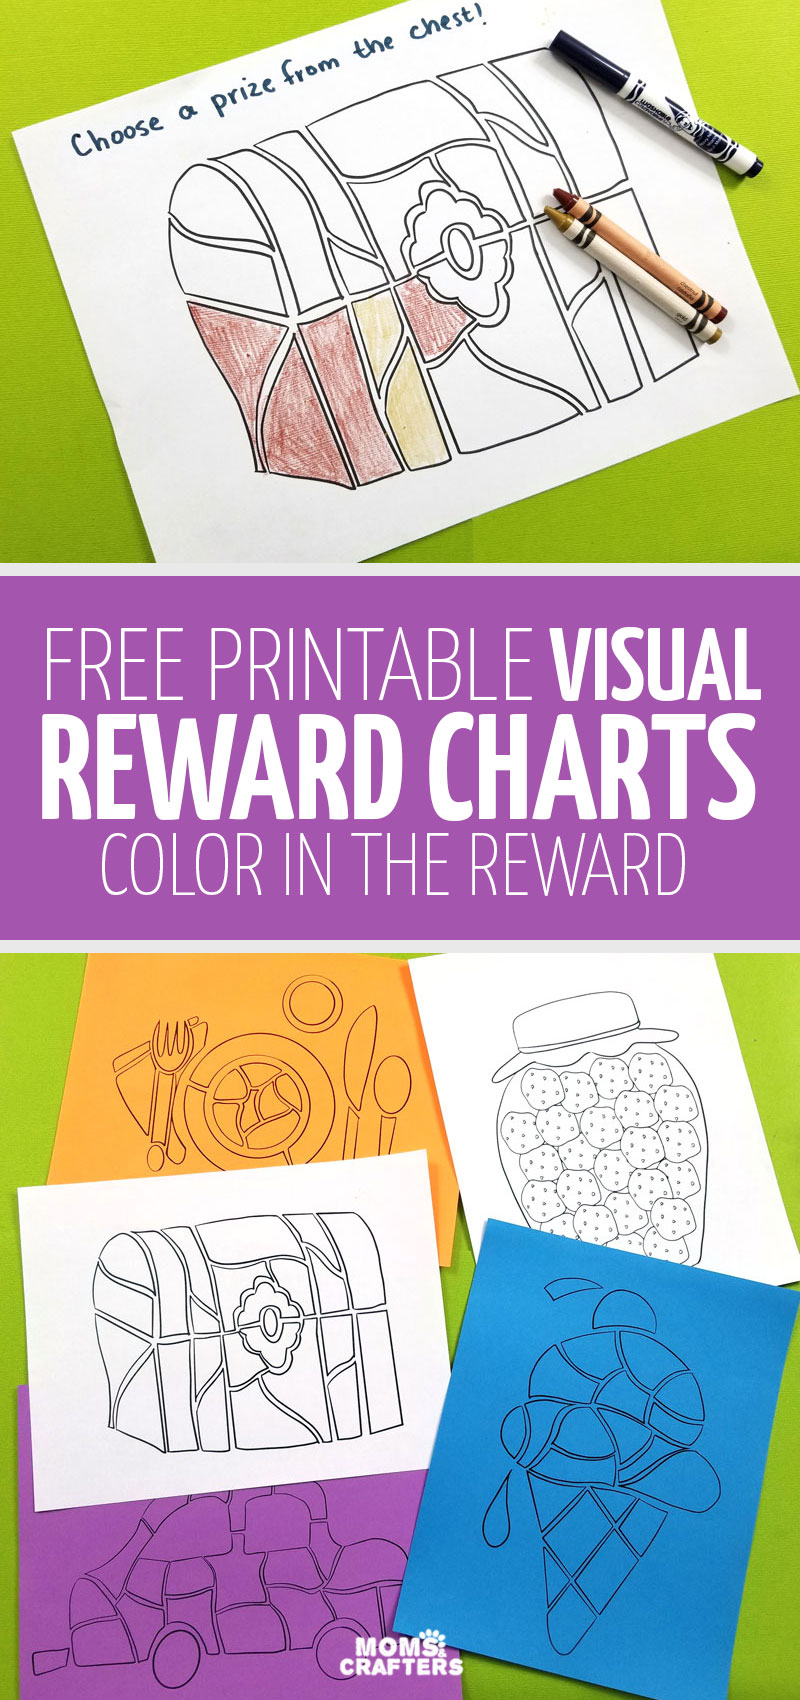 Visual reward charts for kids allow them to see visually how they're earning their prizes! Click to get these free printables rewards charts for kids - toddlers, preschoolers, and even teens!